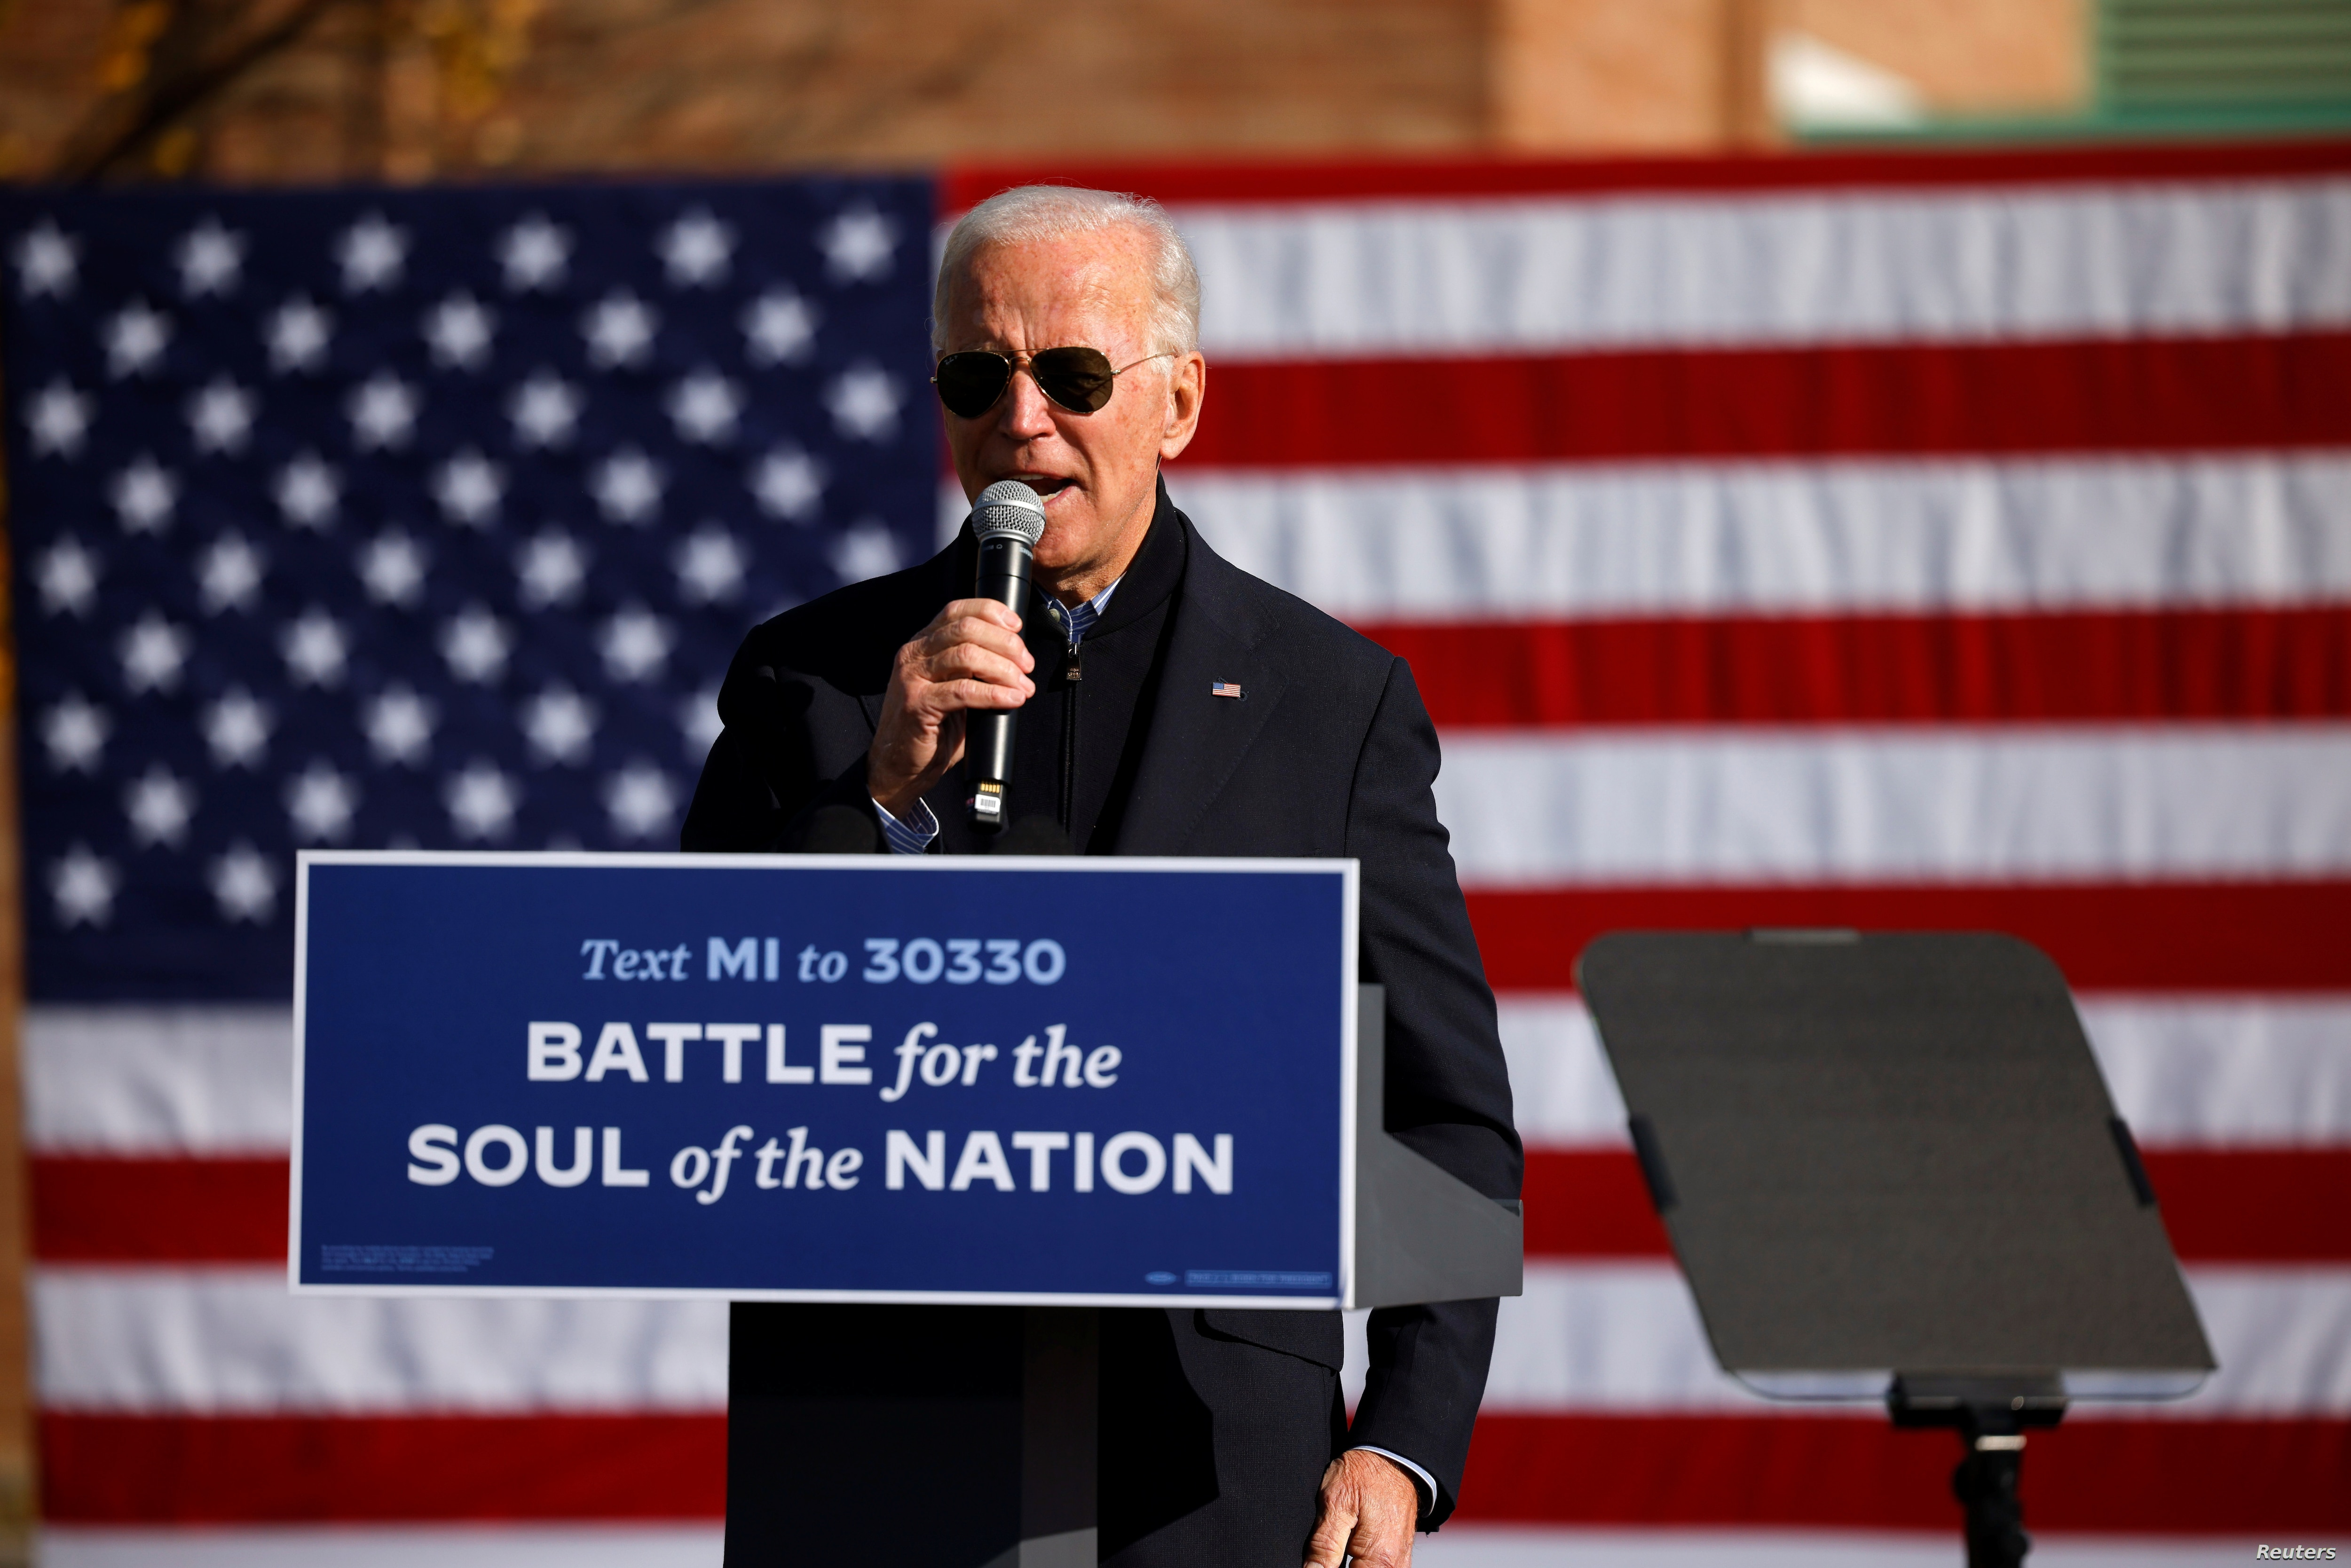 Biden On Third Try Aims For Summit Of Us Political Life Voice Of America English